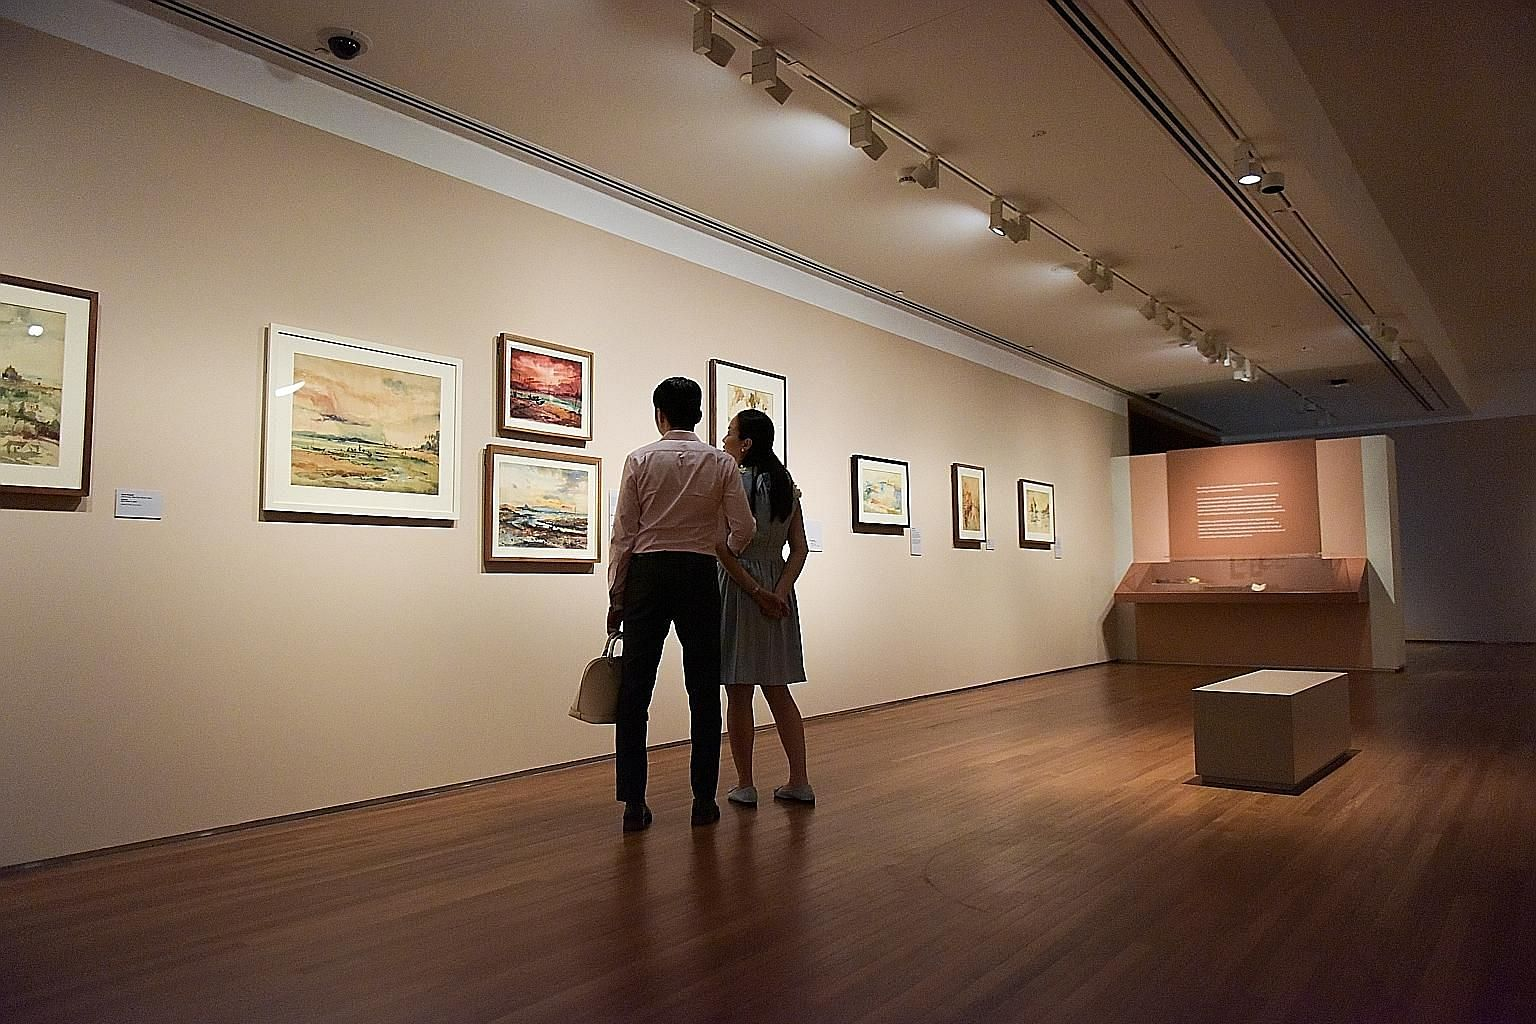 To better engage audiences, the National Gallery Singapore has started feedback surveys for its shows, such as the ongoing Lim Cheng Hoe: Painting Singapore display (above), and theatre group The Necessary Stage has put its archives online (left).